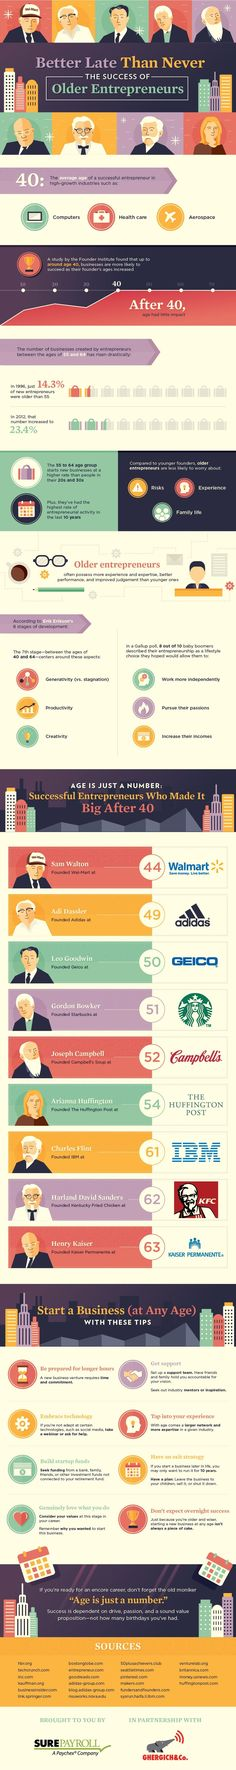 Think you're too old to be a solopreneur/entrepreneur? Here's a list of entrepreneurs that got started later in life. Go after your dreams, it's never too late! Home Based Business, Business Tips, Business Infographics, Business Motivation, Business Quotes, Online Business, Business Marketing, Internet Marketing, Business Entrepreneur